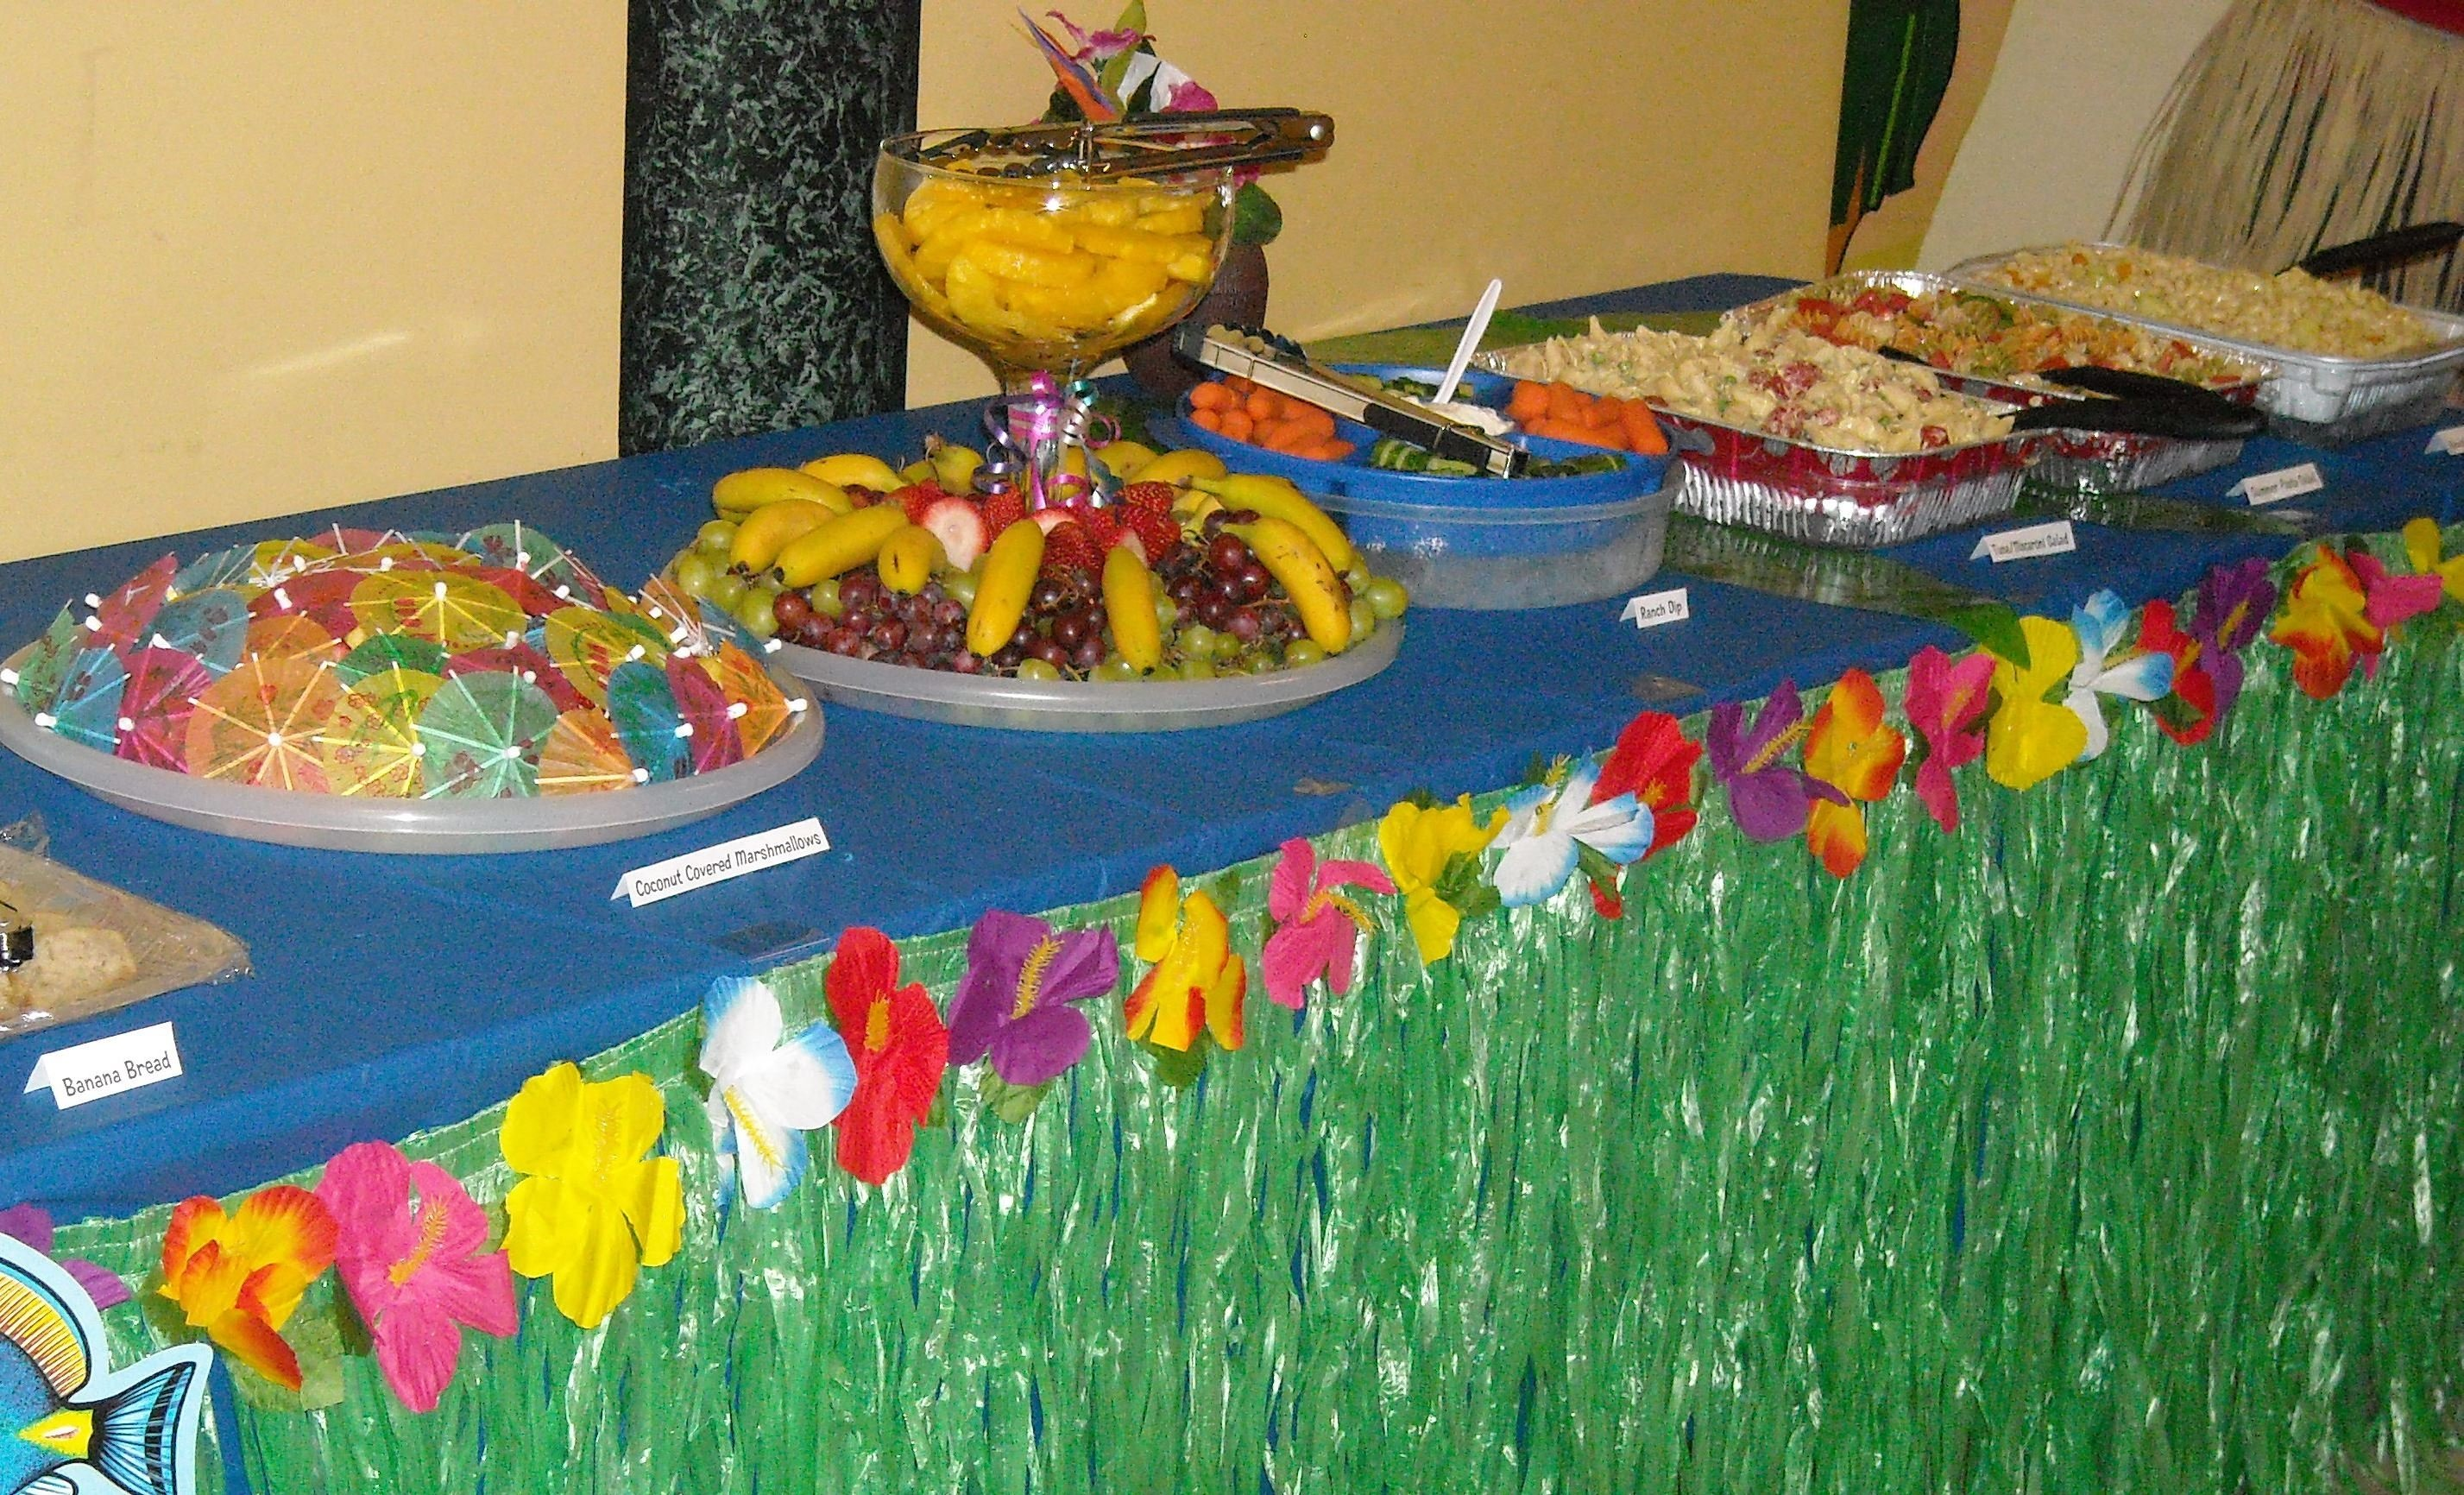 10 Attractive Ideas For A Luau Party luau party ideas be organized make lists for needed supplies 2020